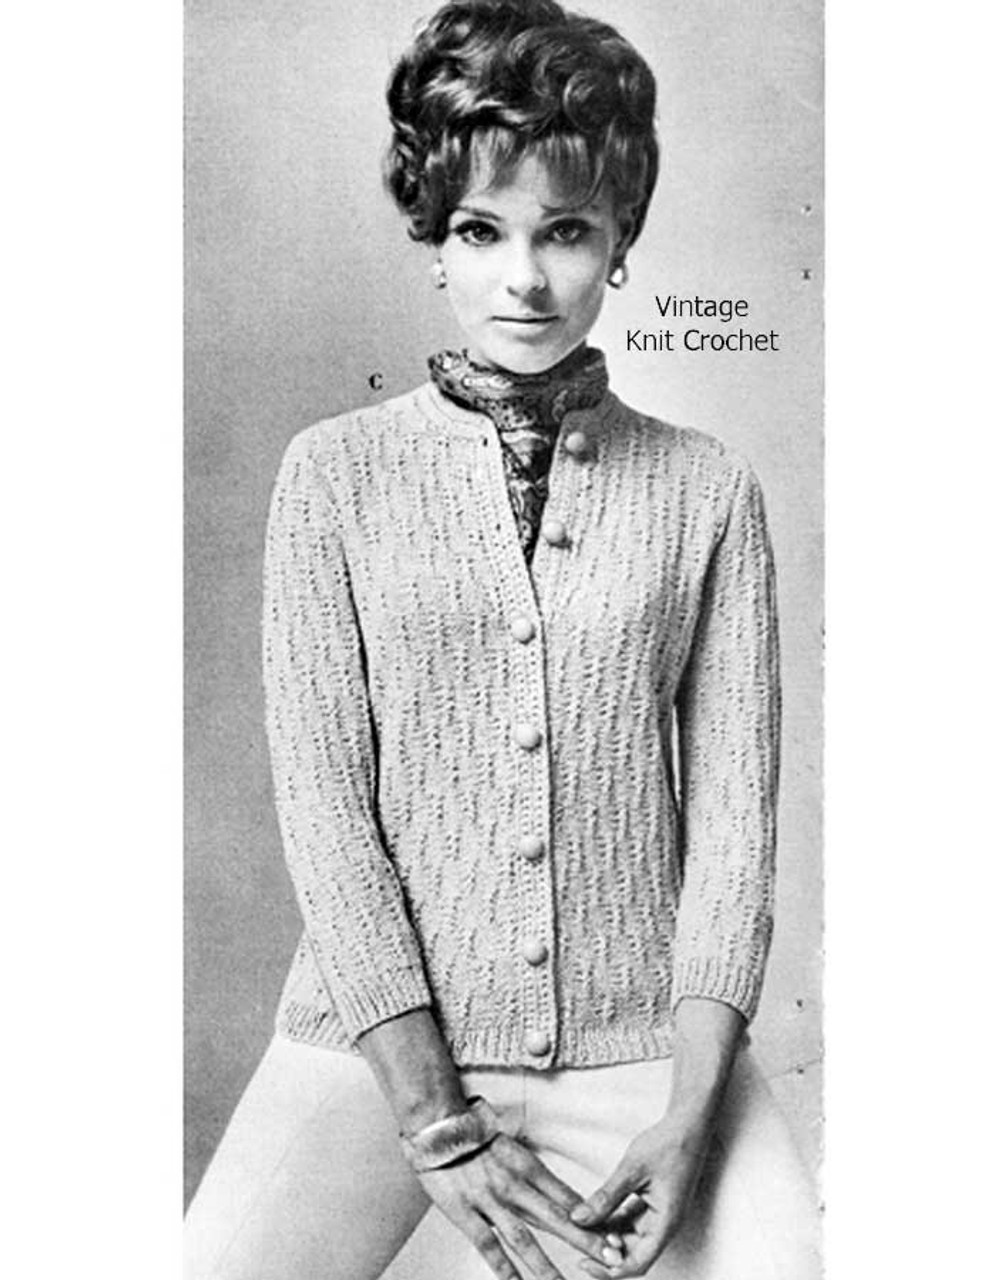 Vintage Knitted Cardigan in Cross Stitch